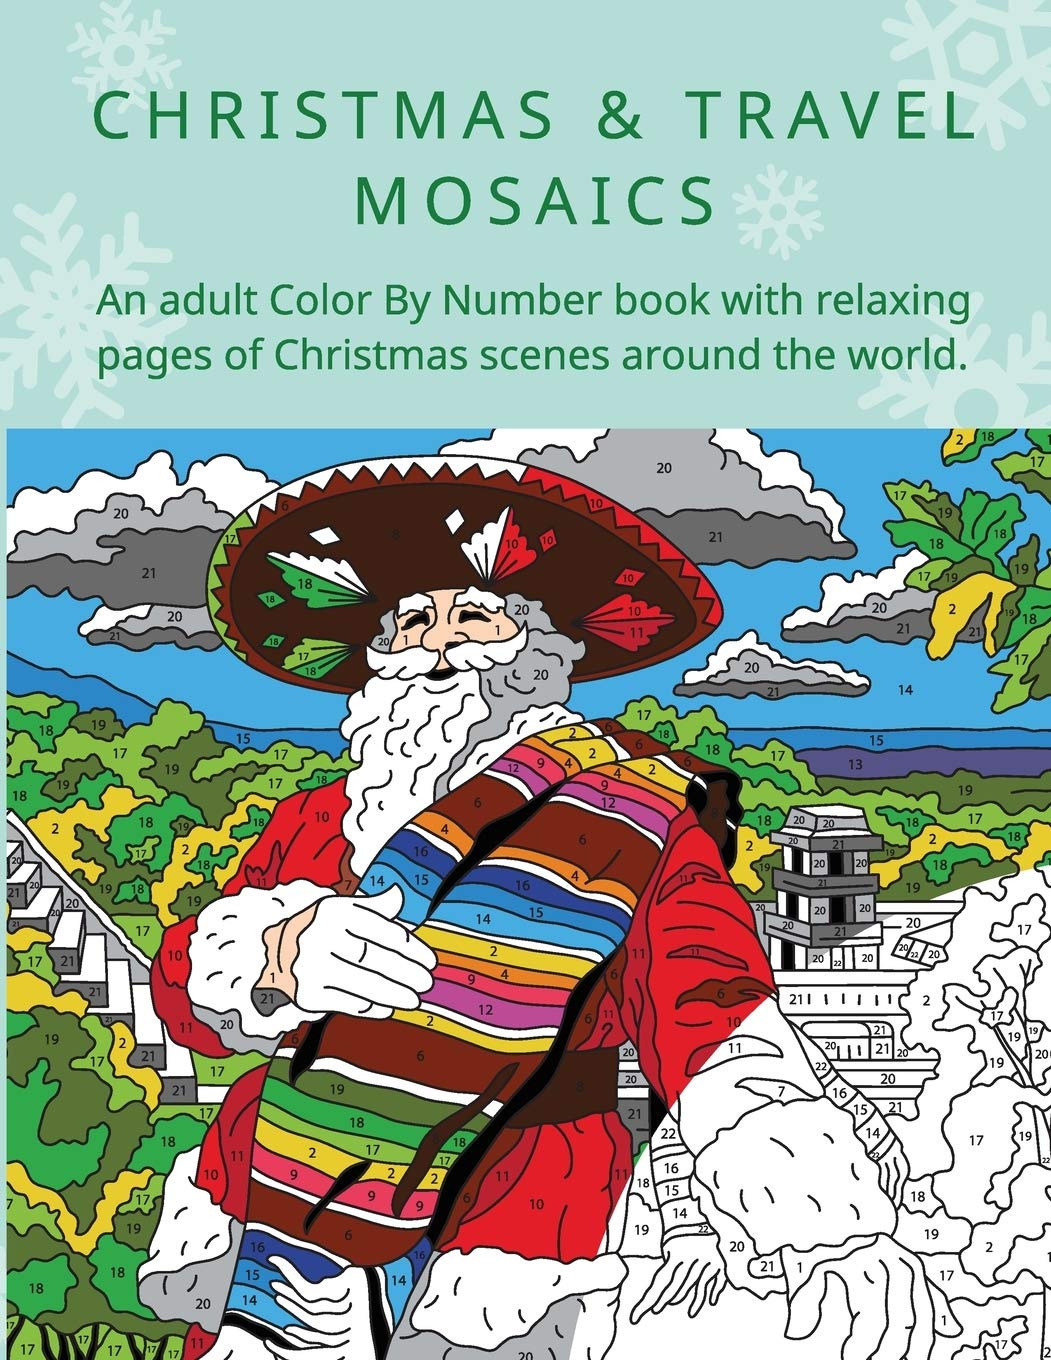 CHRISTMAS And TRAVEL MOSAICS  An Adult Color By Number Book With Relaxing Pages Of Christmas Scenes Around The World.